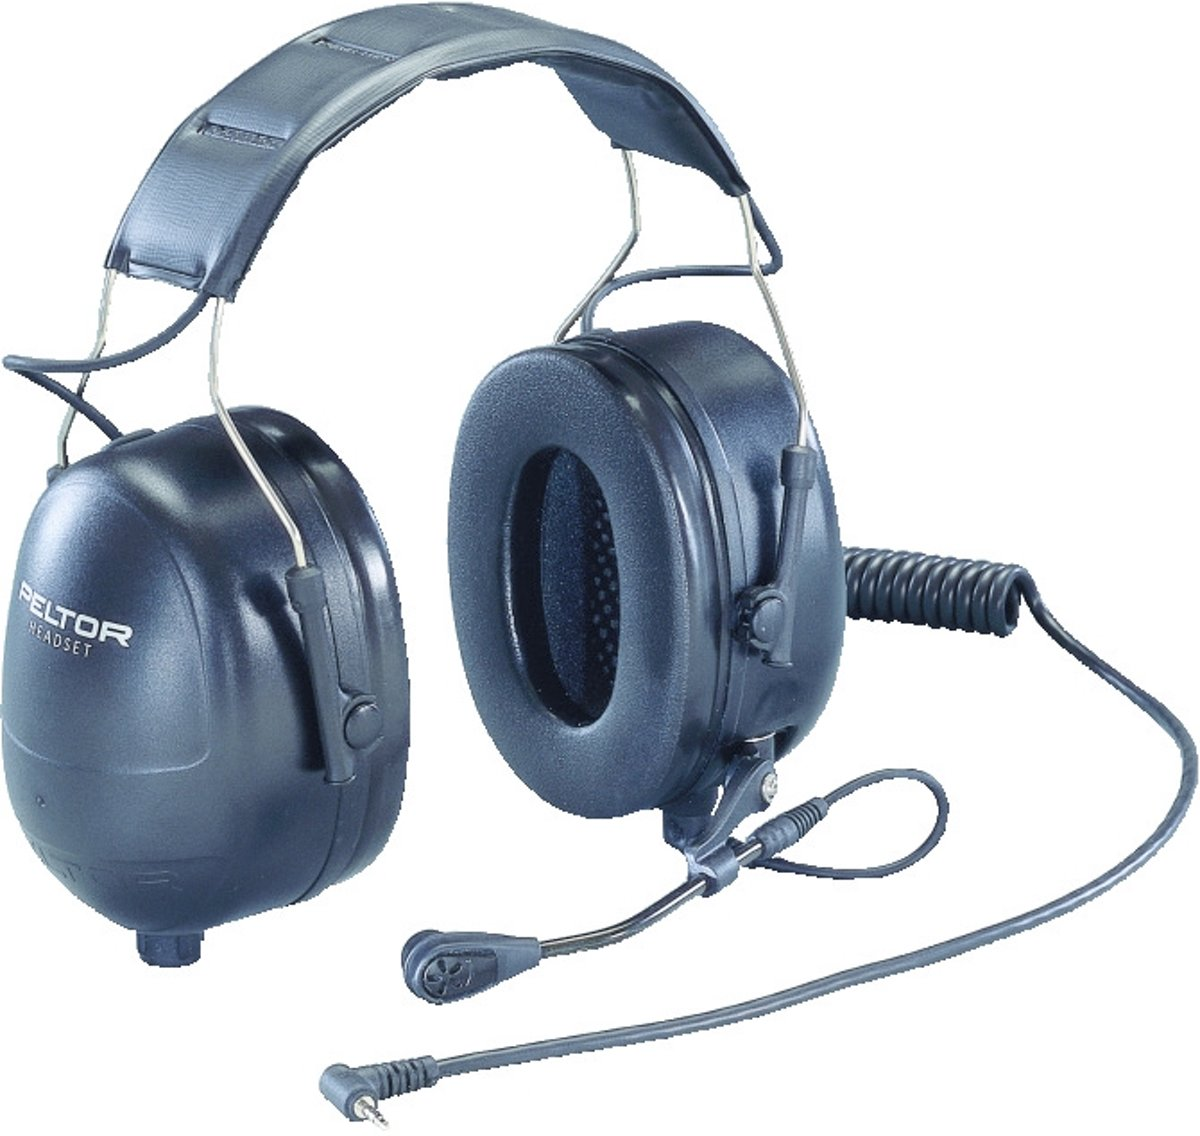 PELTOR Heavy-duty HEADSETS DUO voor TELEFONIE-toepassingen (3m-PELTOR; MTH79A-28)